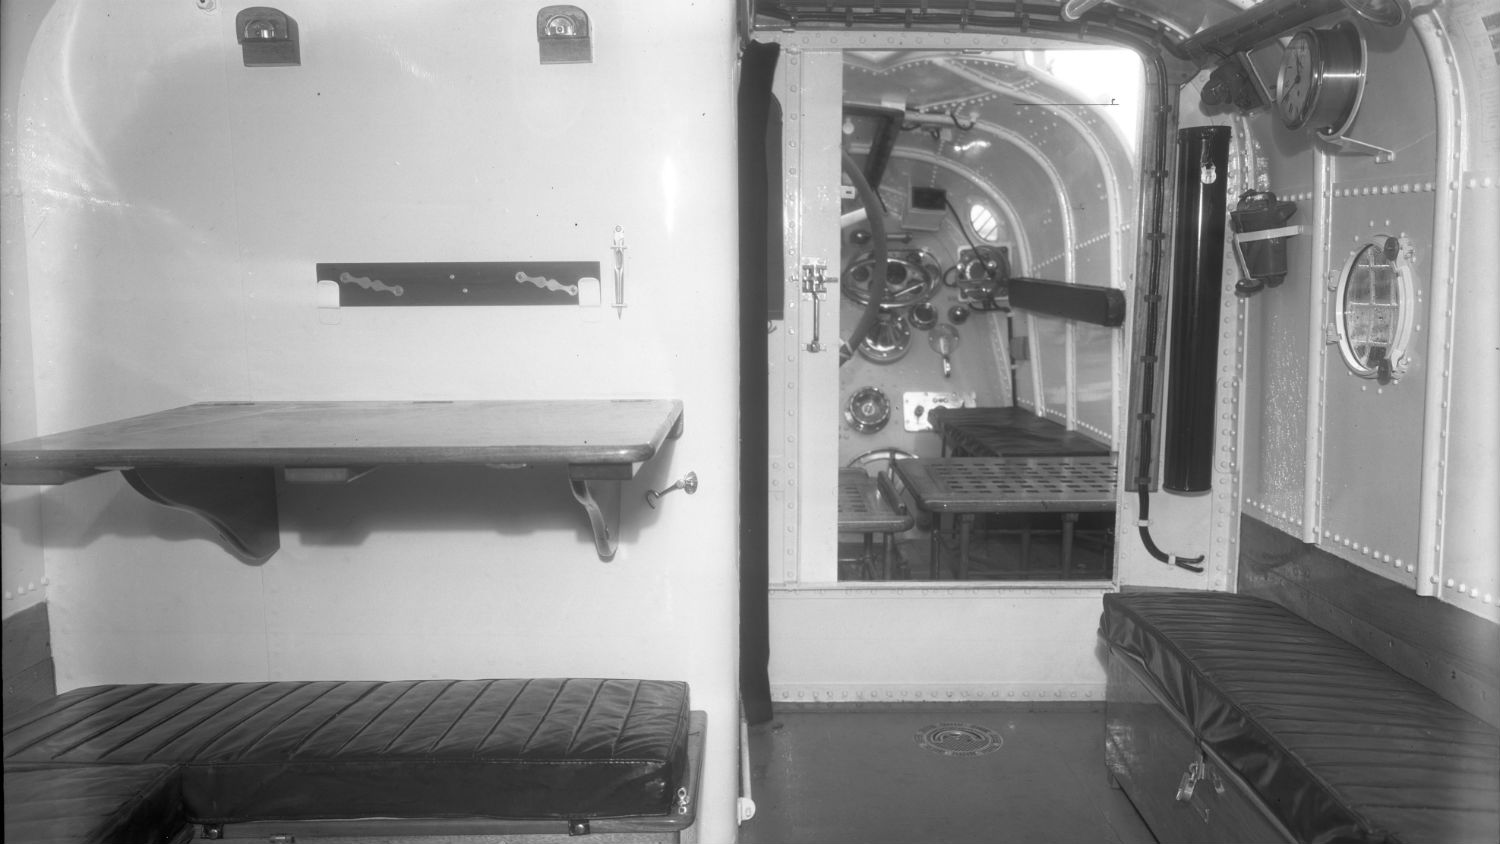 Black and white image of Margate lifeboat, North Foreland, Civil Service No.11, interior